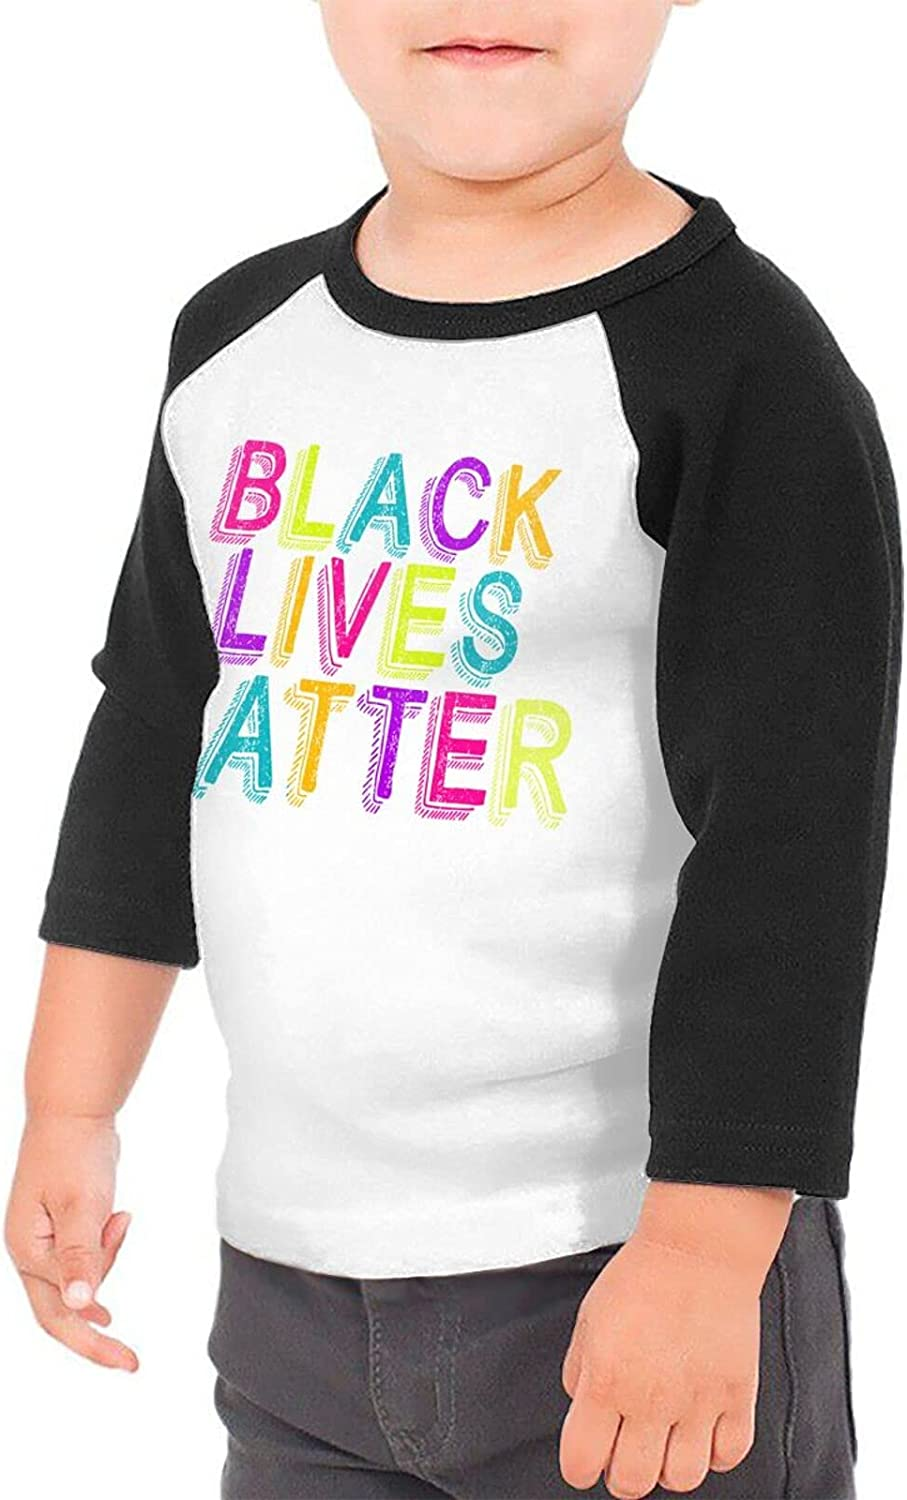 Black History Month Black Live Matter T-Shirts Novelty for Youth Tees with Cool Designs